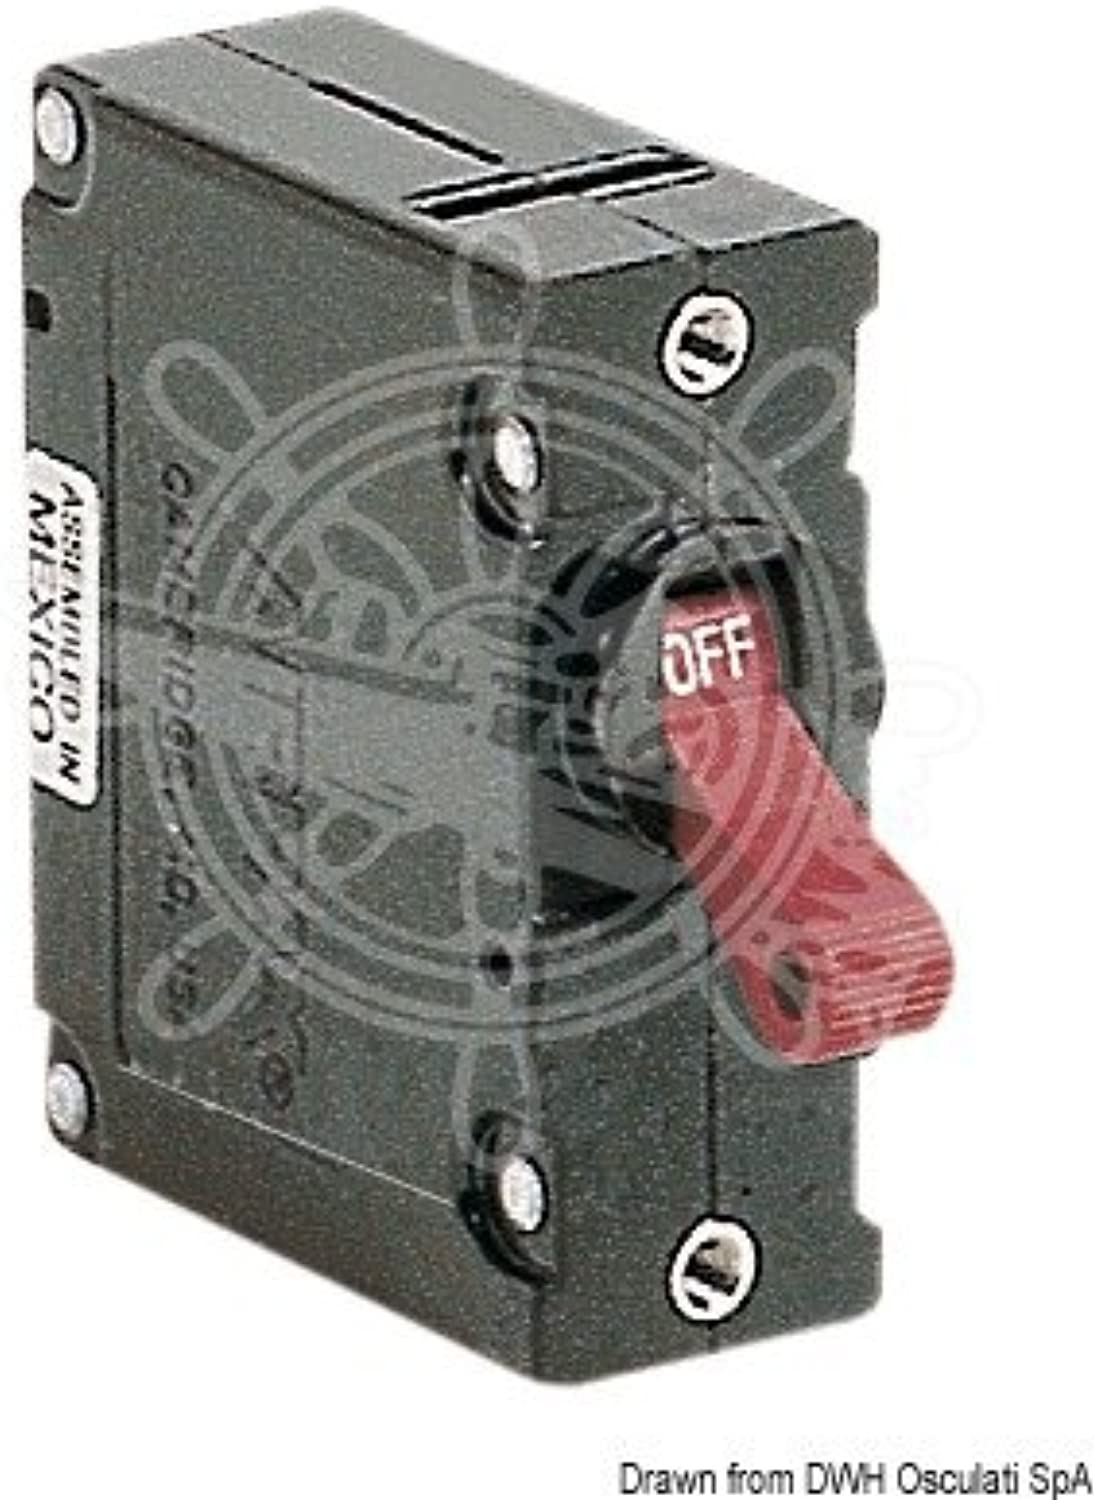 AIRPAX Magneto Hydraulic Tumbler Switch with Overhanging Lever 15A